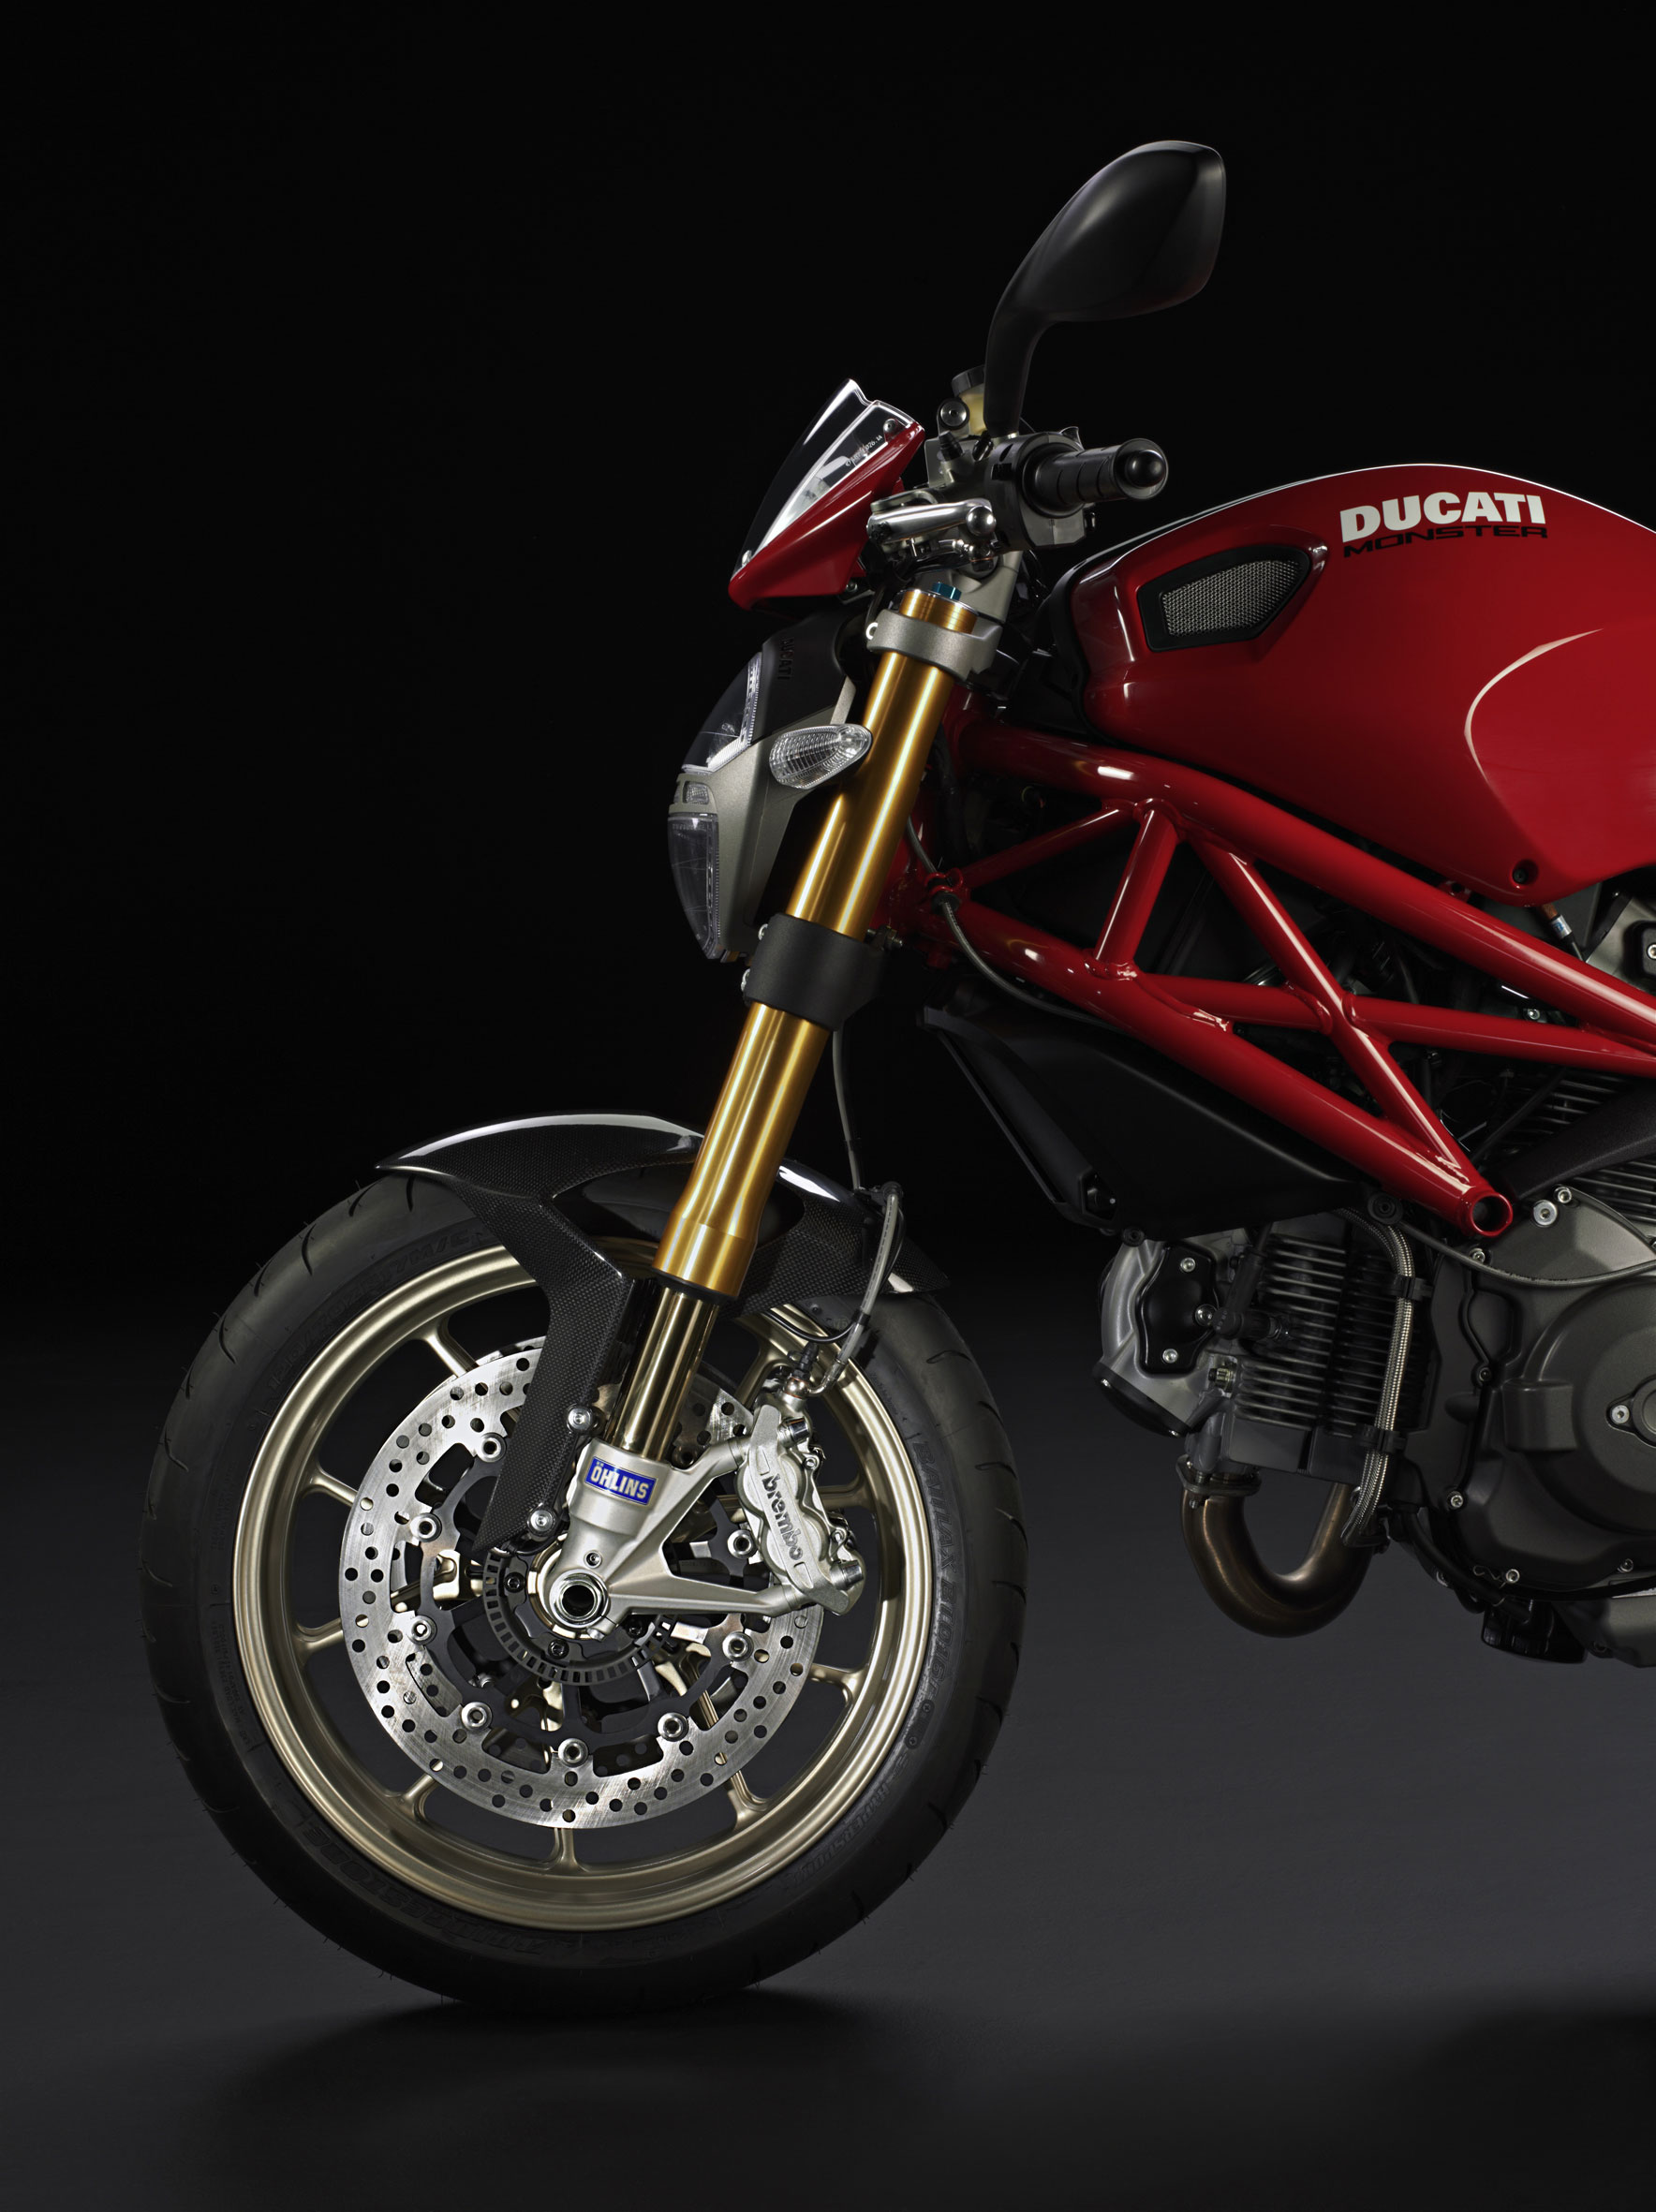 Ducati Monster 1100 S 2010 images #79345